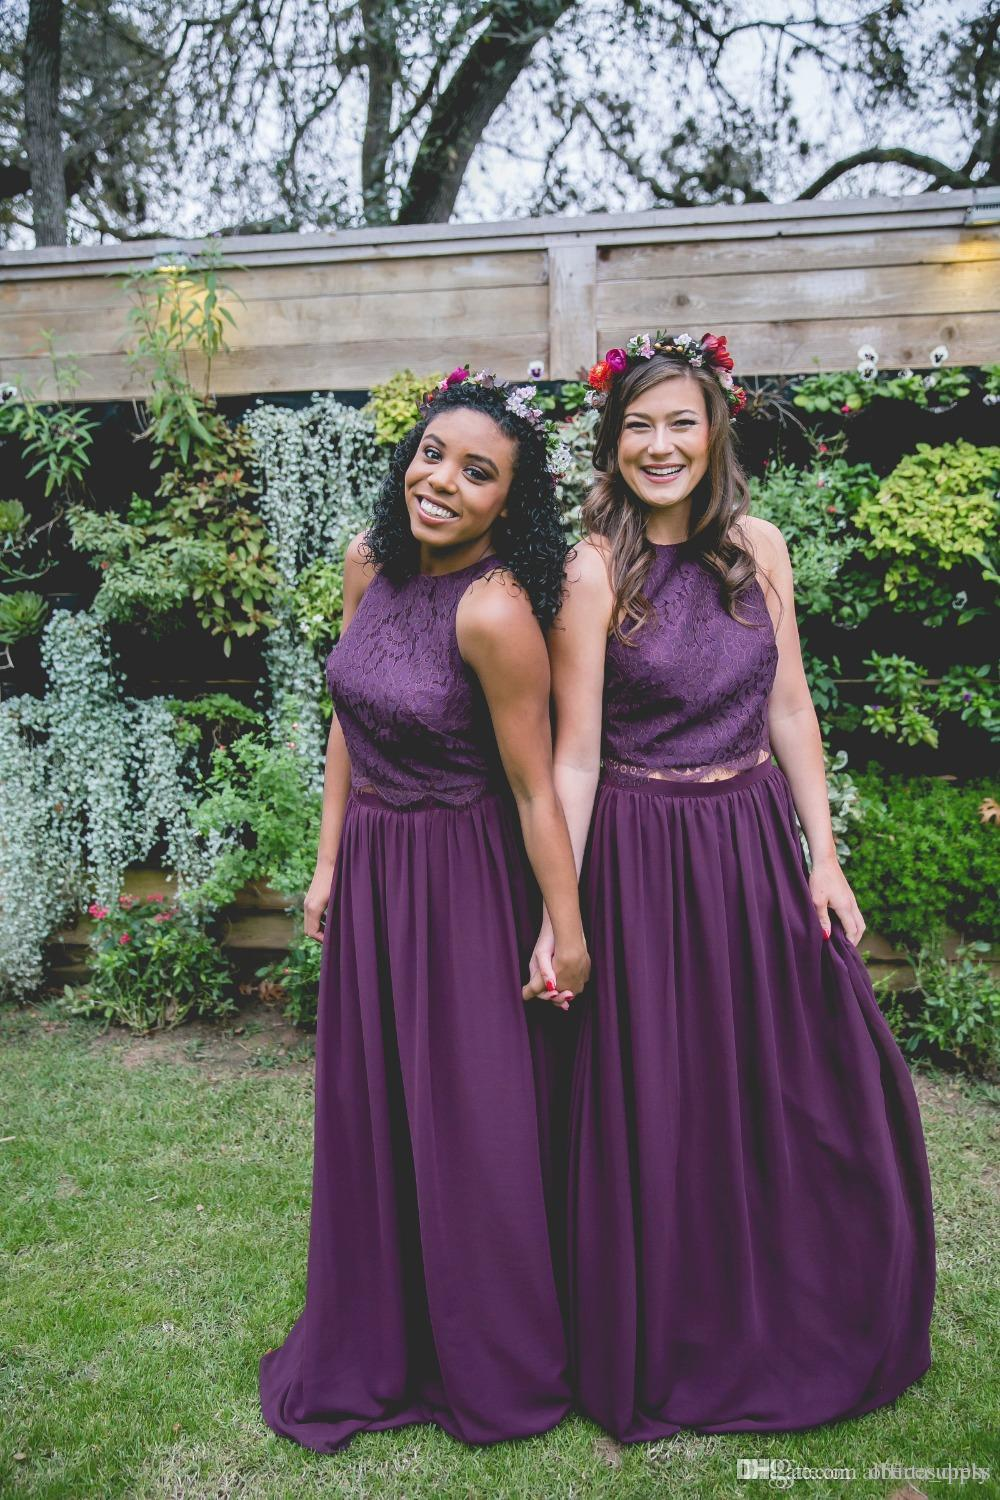 Country two pieces bridesmaid dresses 2017 cheap dark purple country two pieces bridesmaid dresses 2017 cheap dark purple chiffon long party wedding guest dress bridesmaids maid honor gowns bridesmaid dresses china ombrellifo Image collections